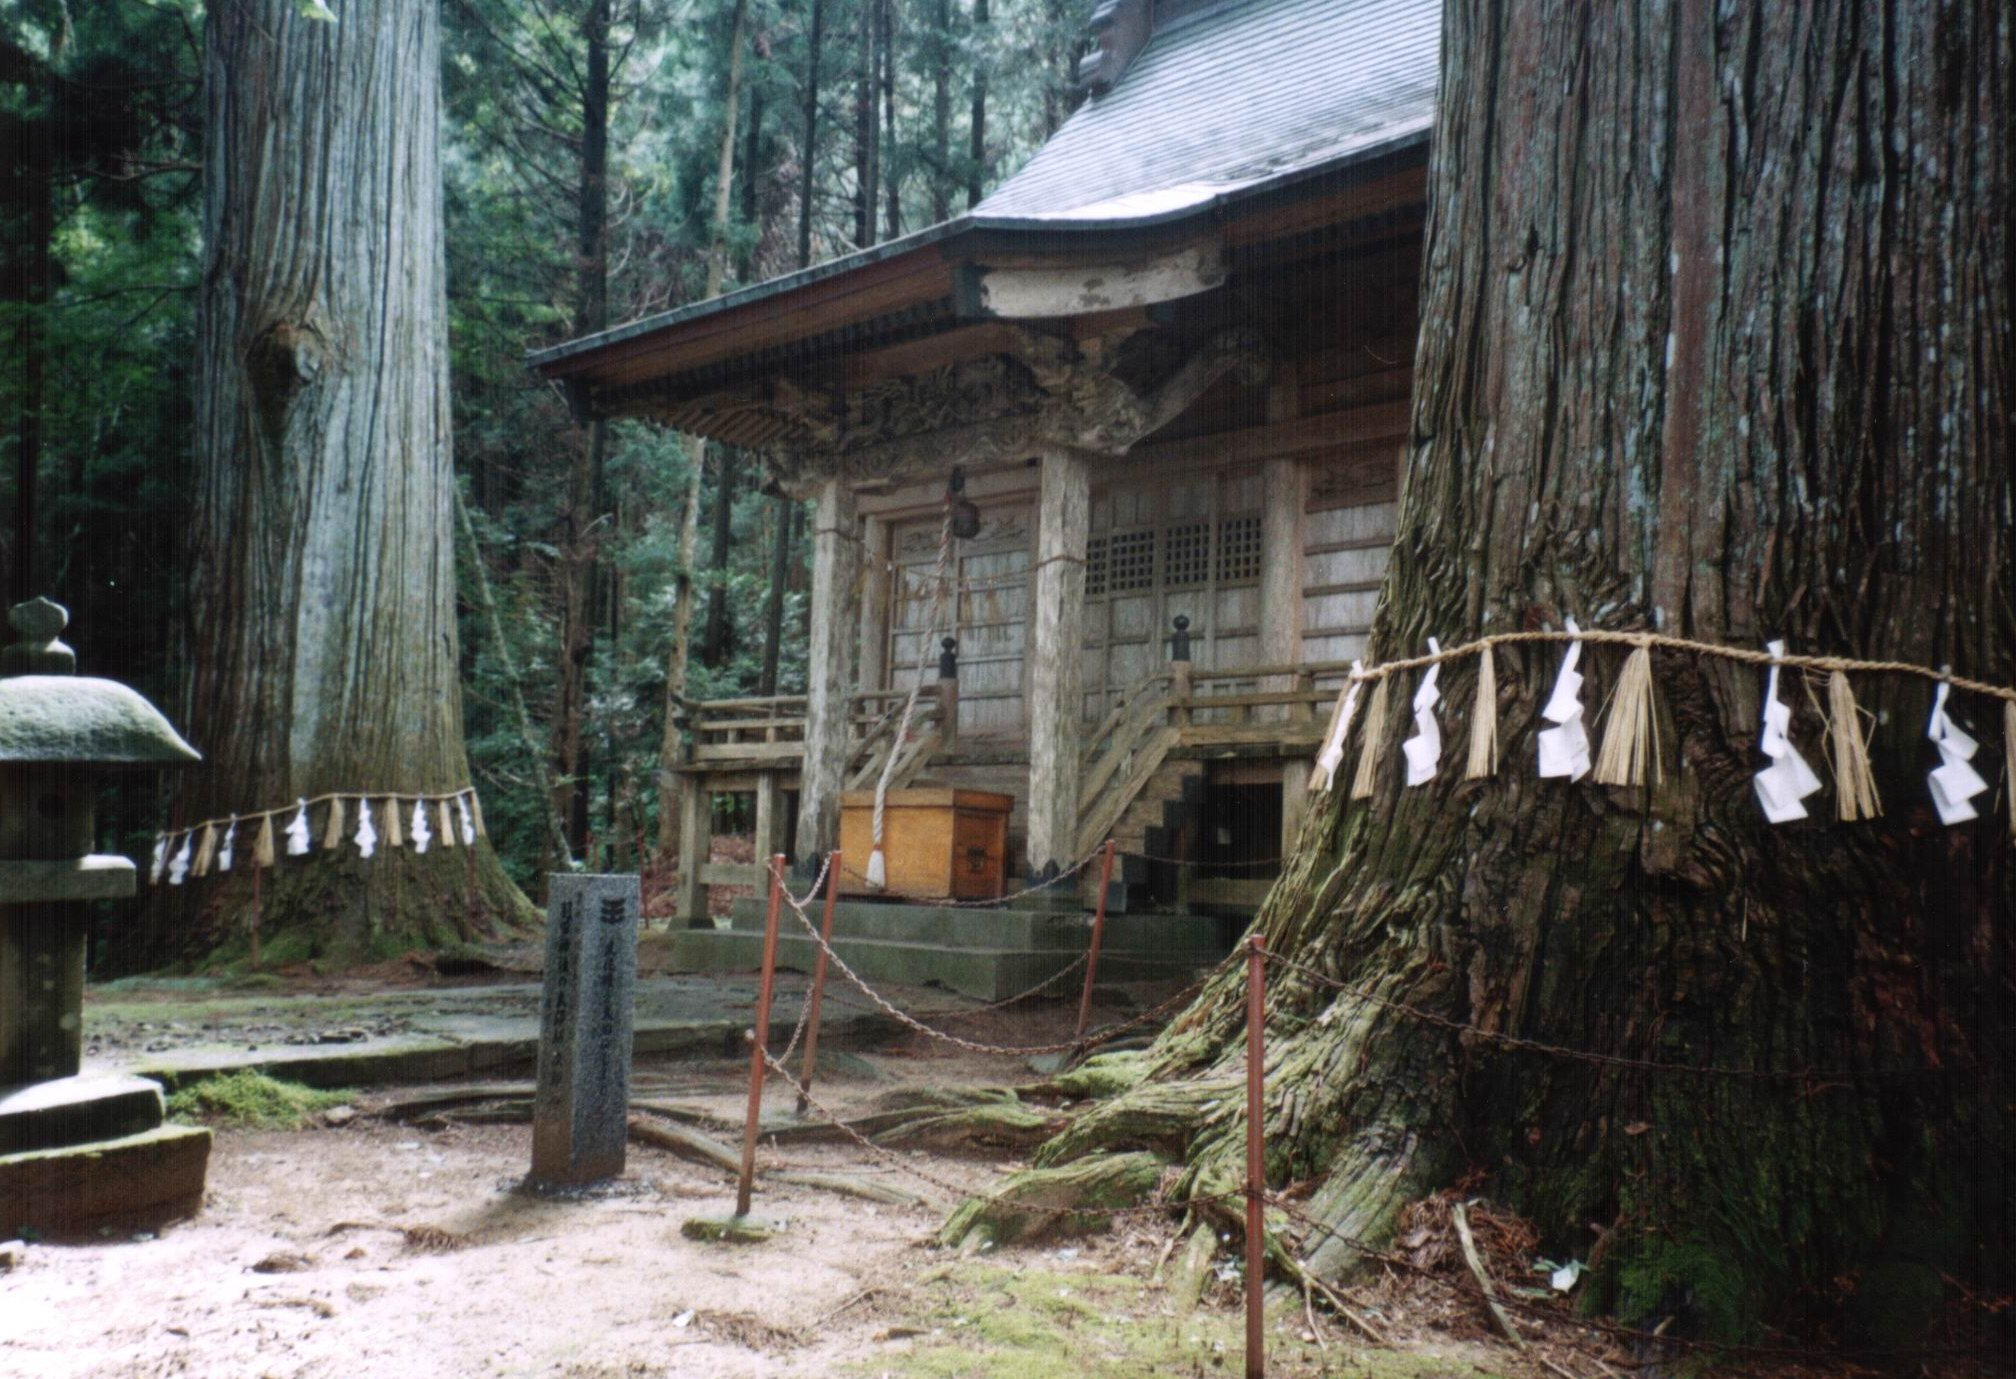 Picture of the two large trees by the side of the shrine